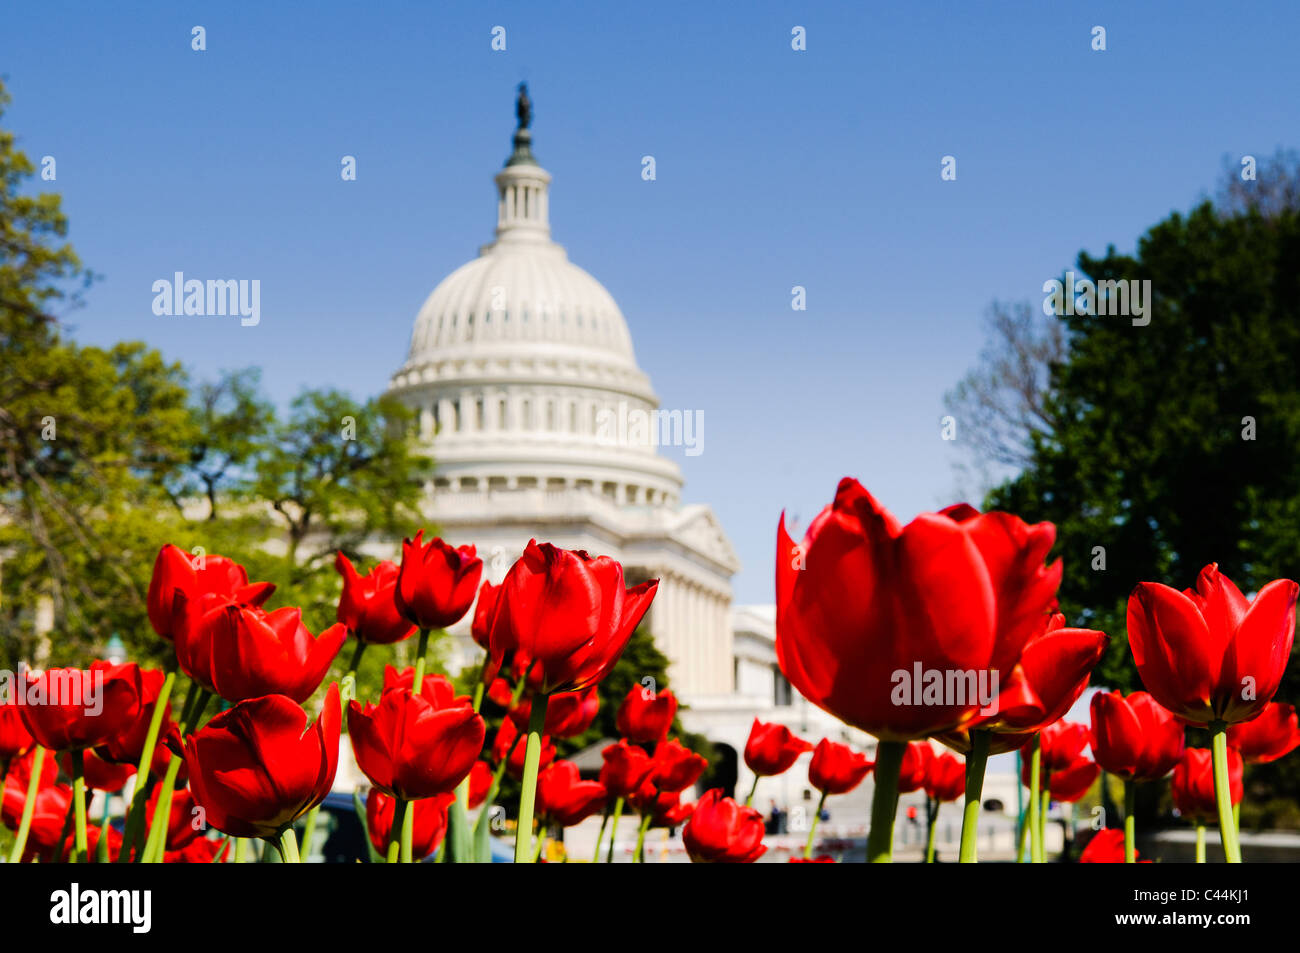 WASHINGTON DC, USA - Red tulips in full bloom in the spring in front of the US Capitol Building dome in Washington Stock Photo